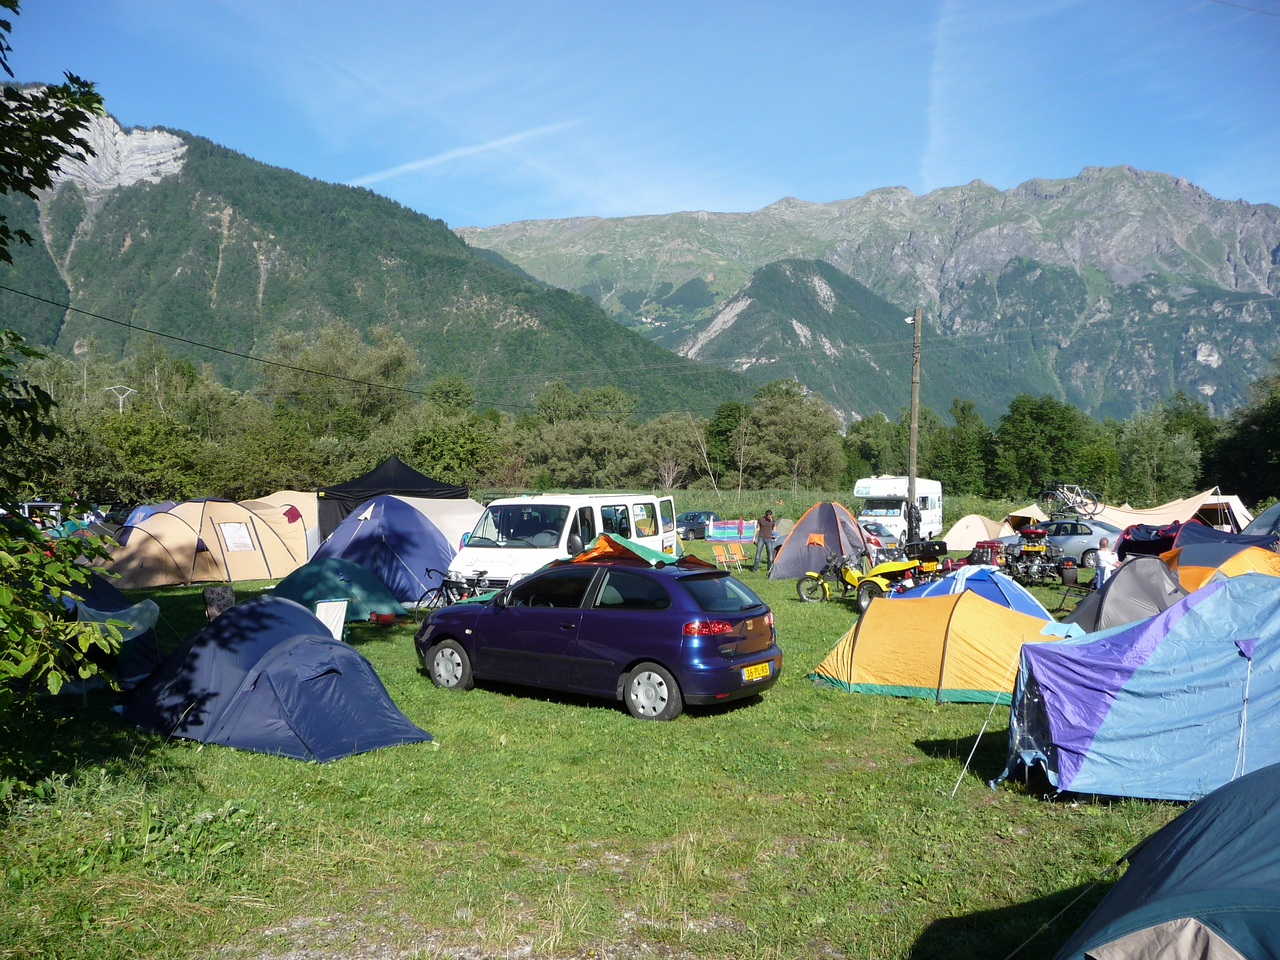 Our camping site. Ours is the little yellow tent.